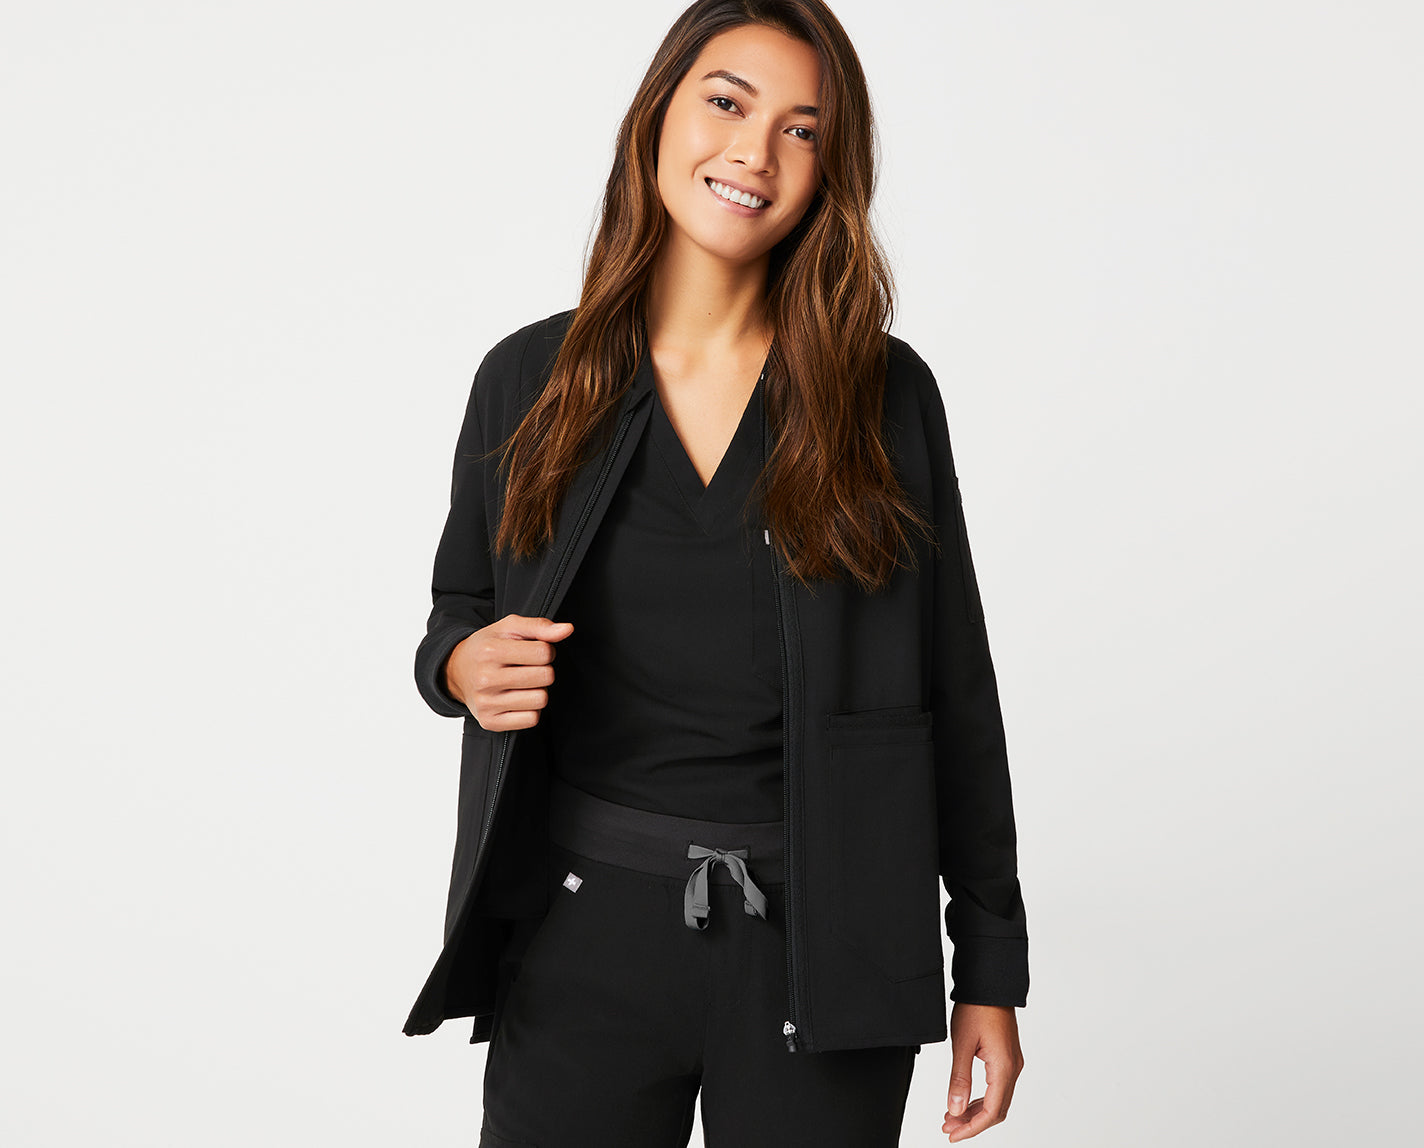 This jacket is — well — the bomb. Made with our proprietary FIONx fabric, Bellery features a bomber-inspired silhouette, side slits for easy movement and tons of functional pockets (seven to be exact!).